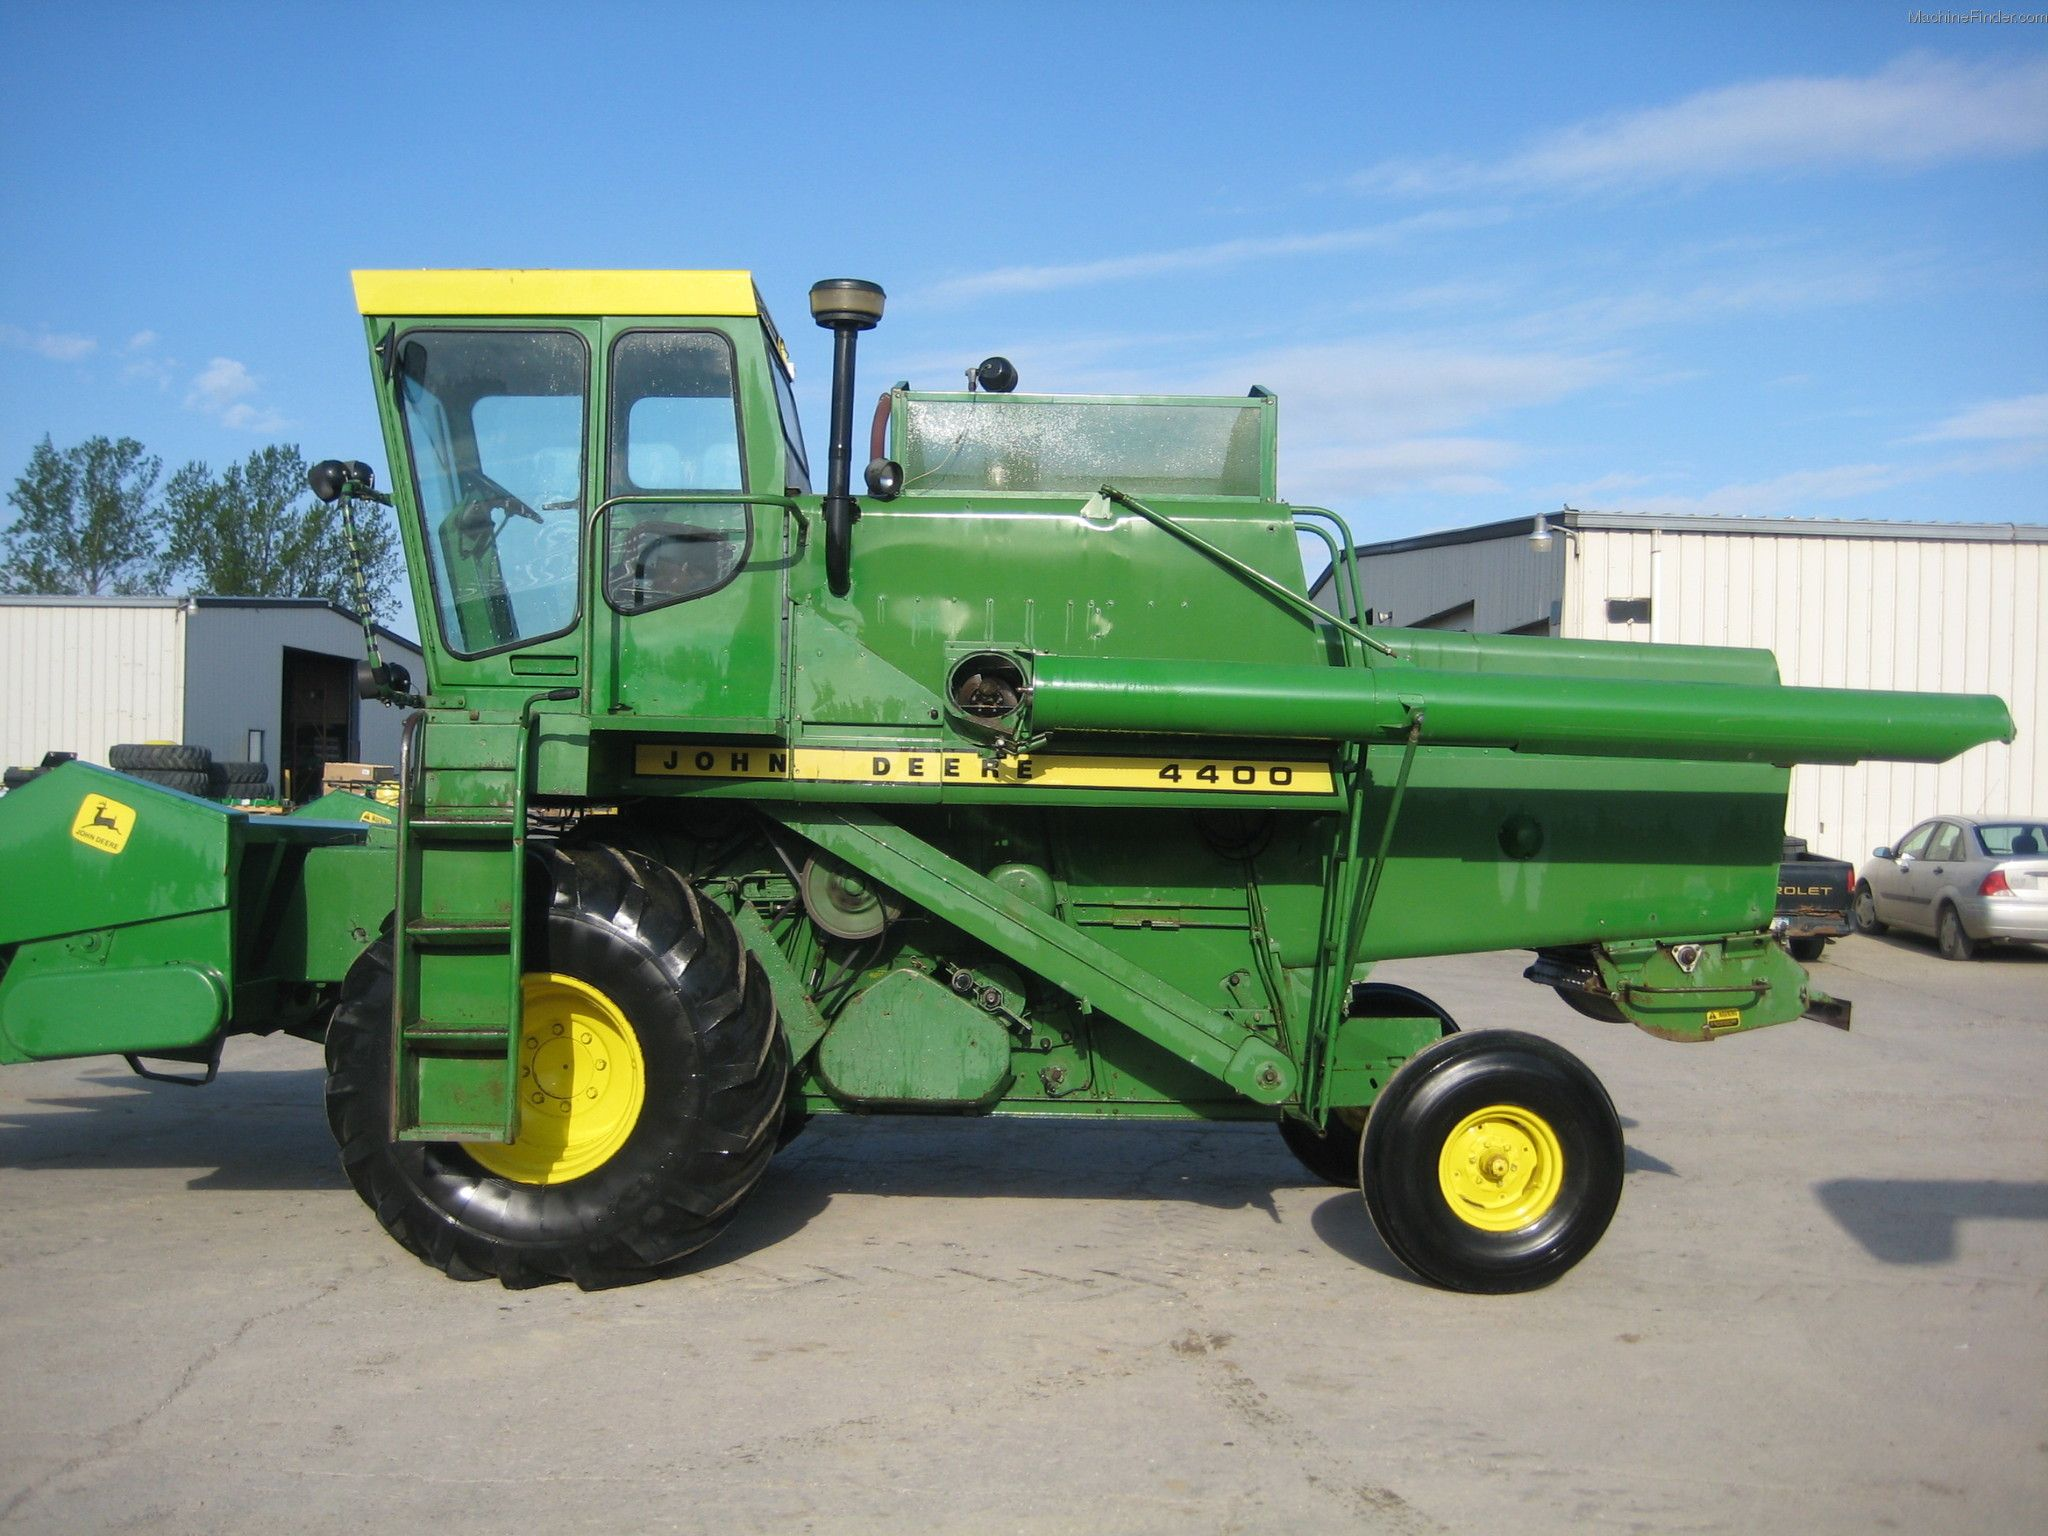 John Deere 55 Combine Wiring Diagram 36 Images 9610 Ca5b46a703422b47e3554e8971cd0fb2 Combines Print Out This Machine Email Electrical Diagrams At